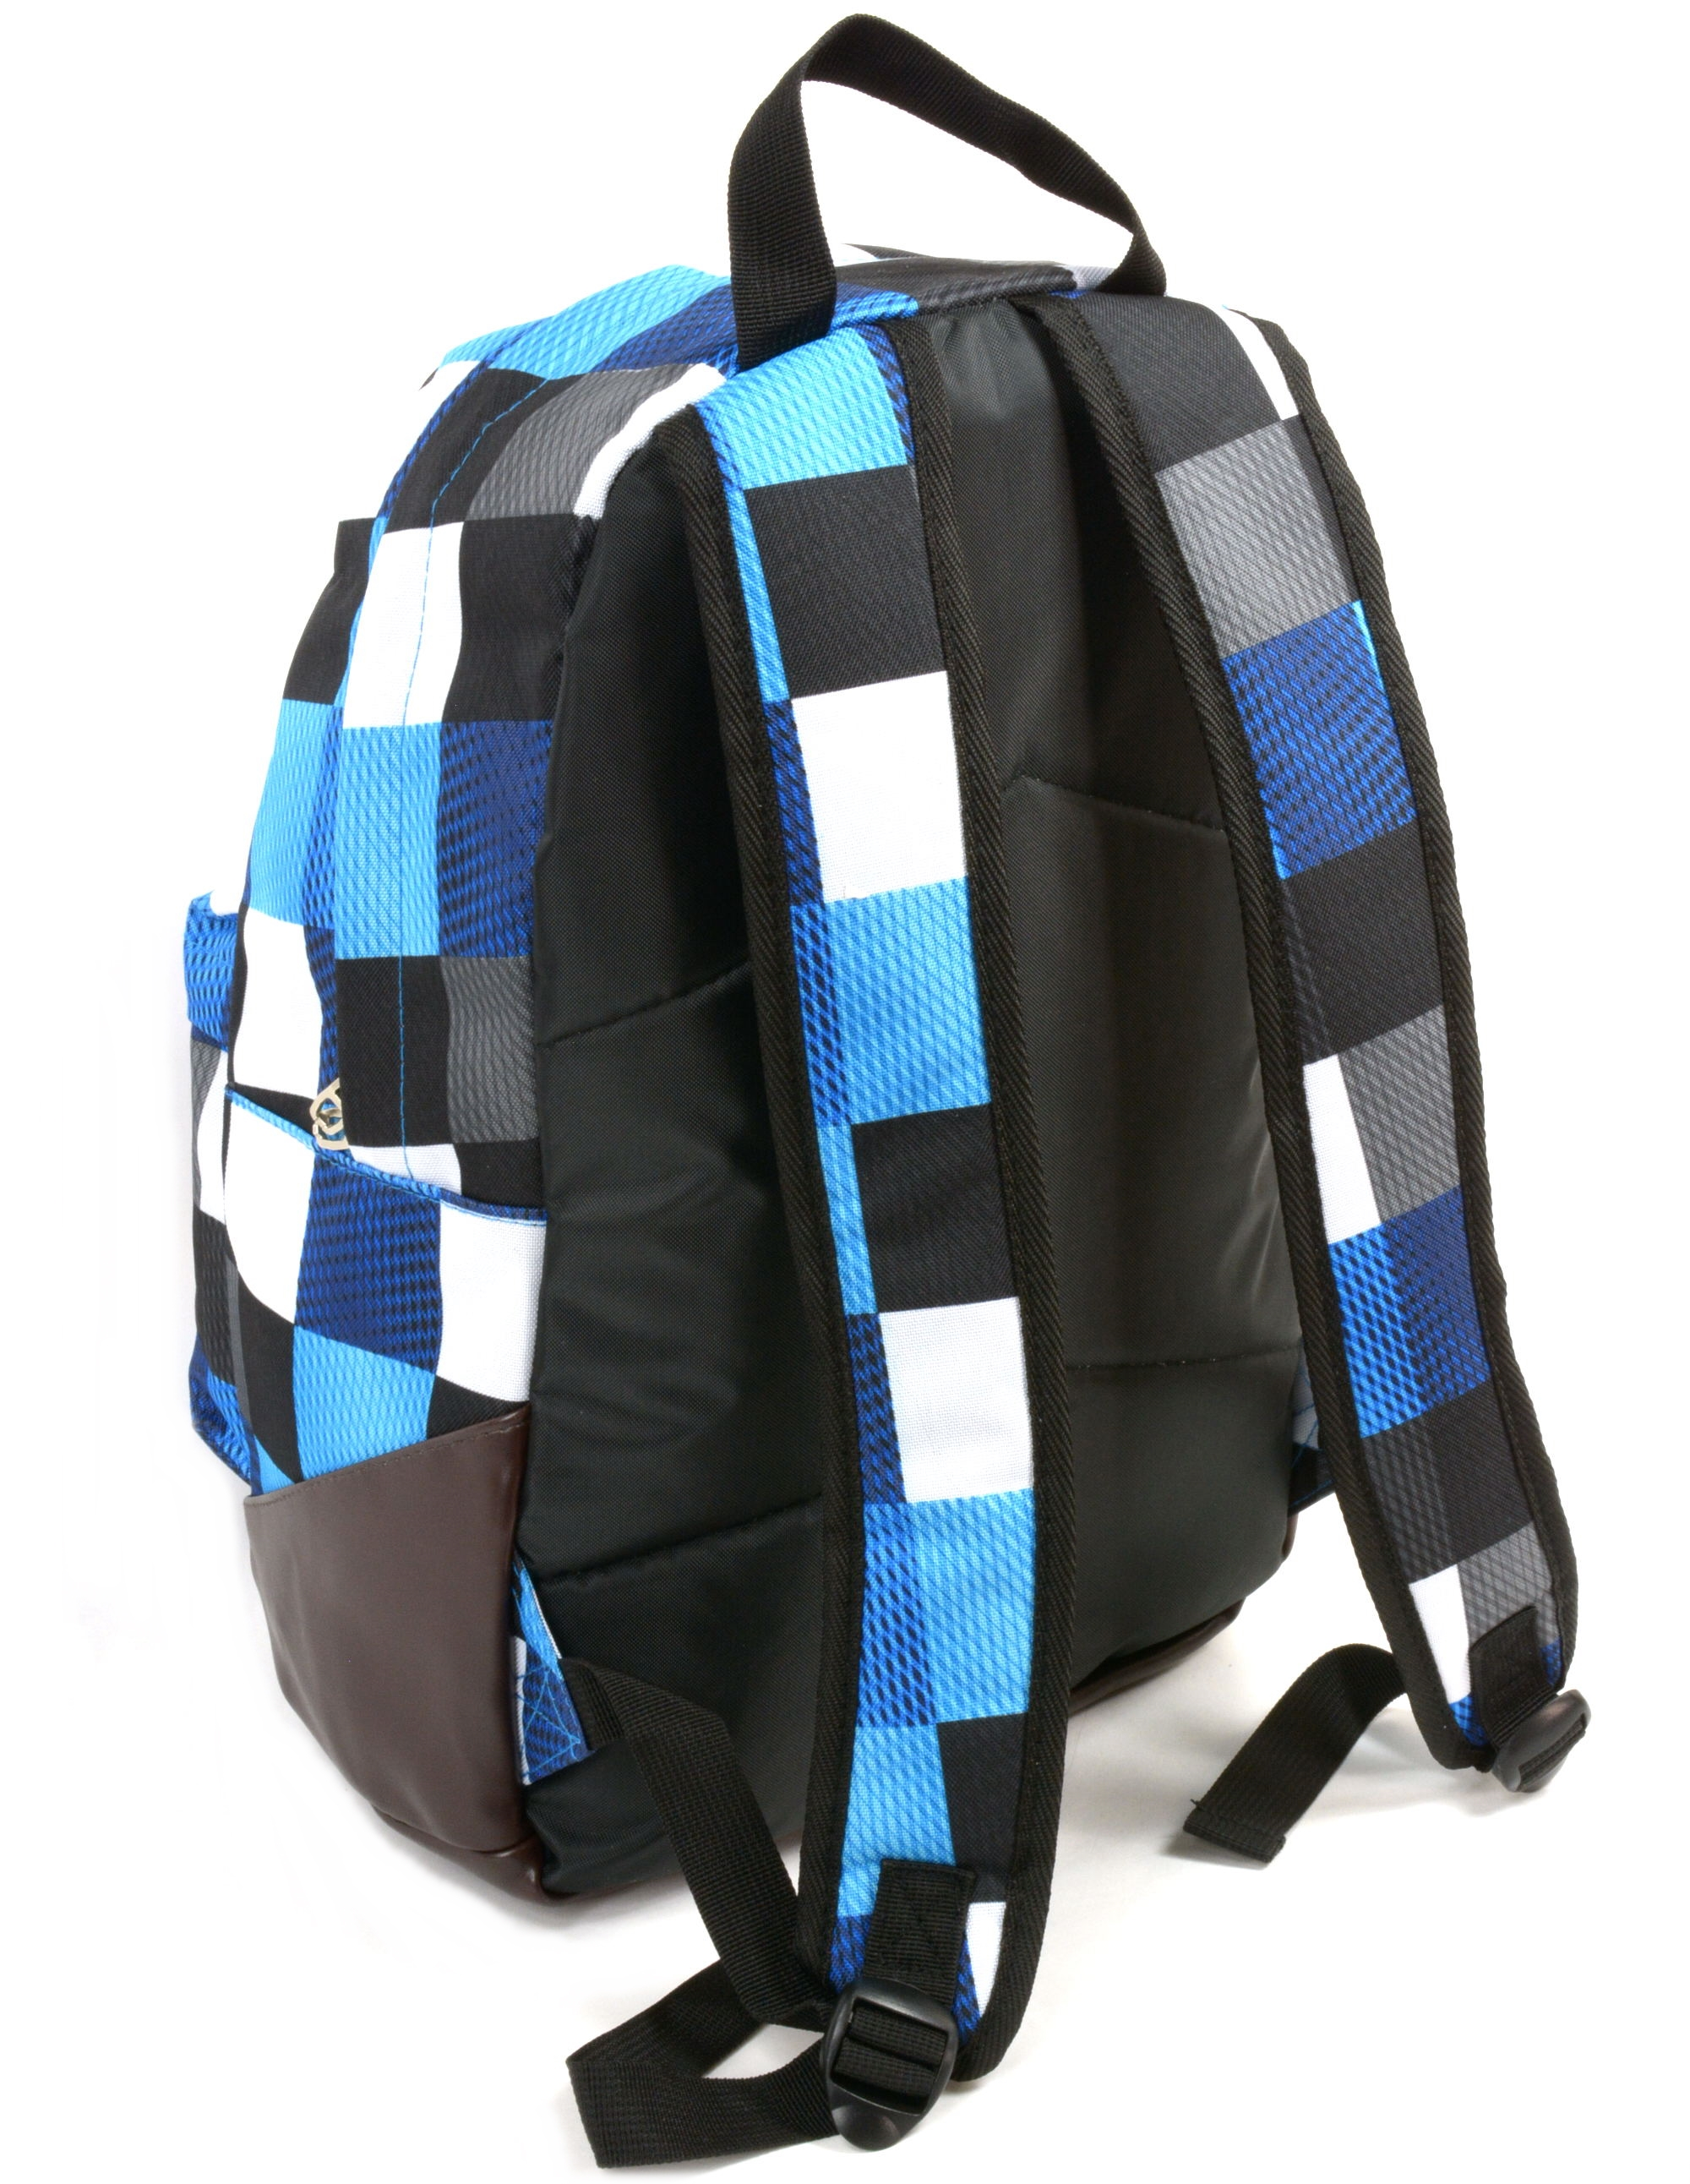 Alpine Swiss Midterm Backpack School Bag Bookbag Daypack 1 Yr ...